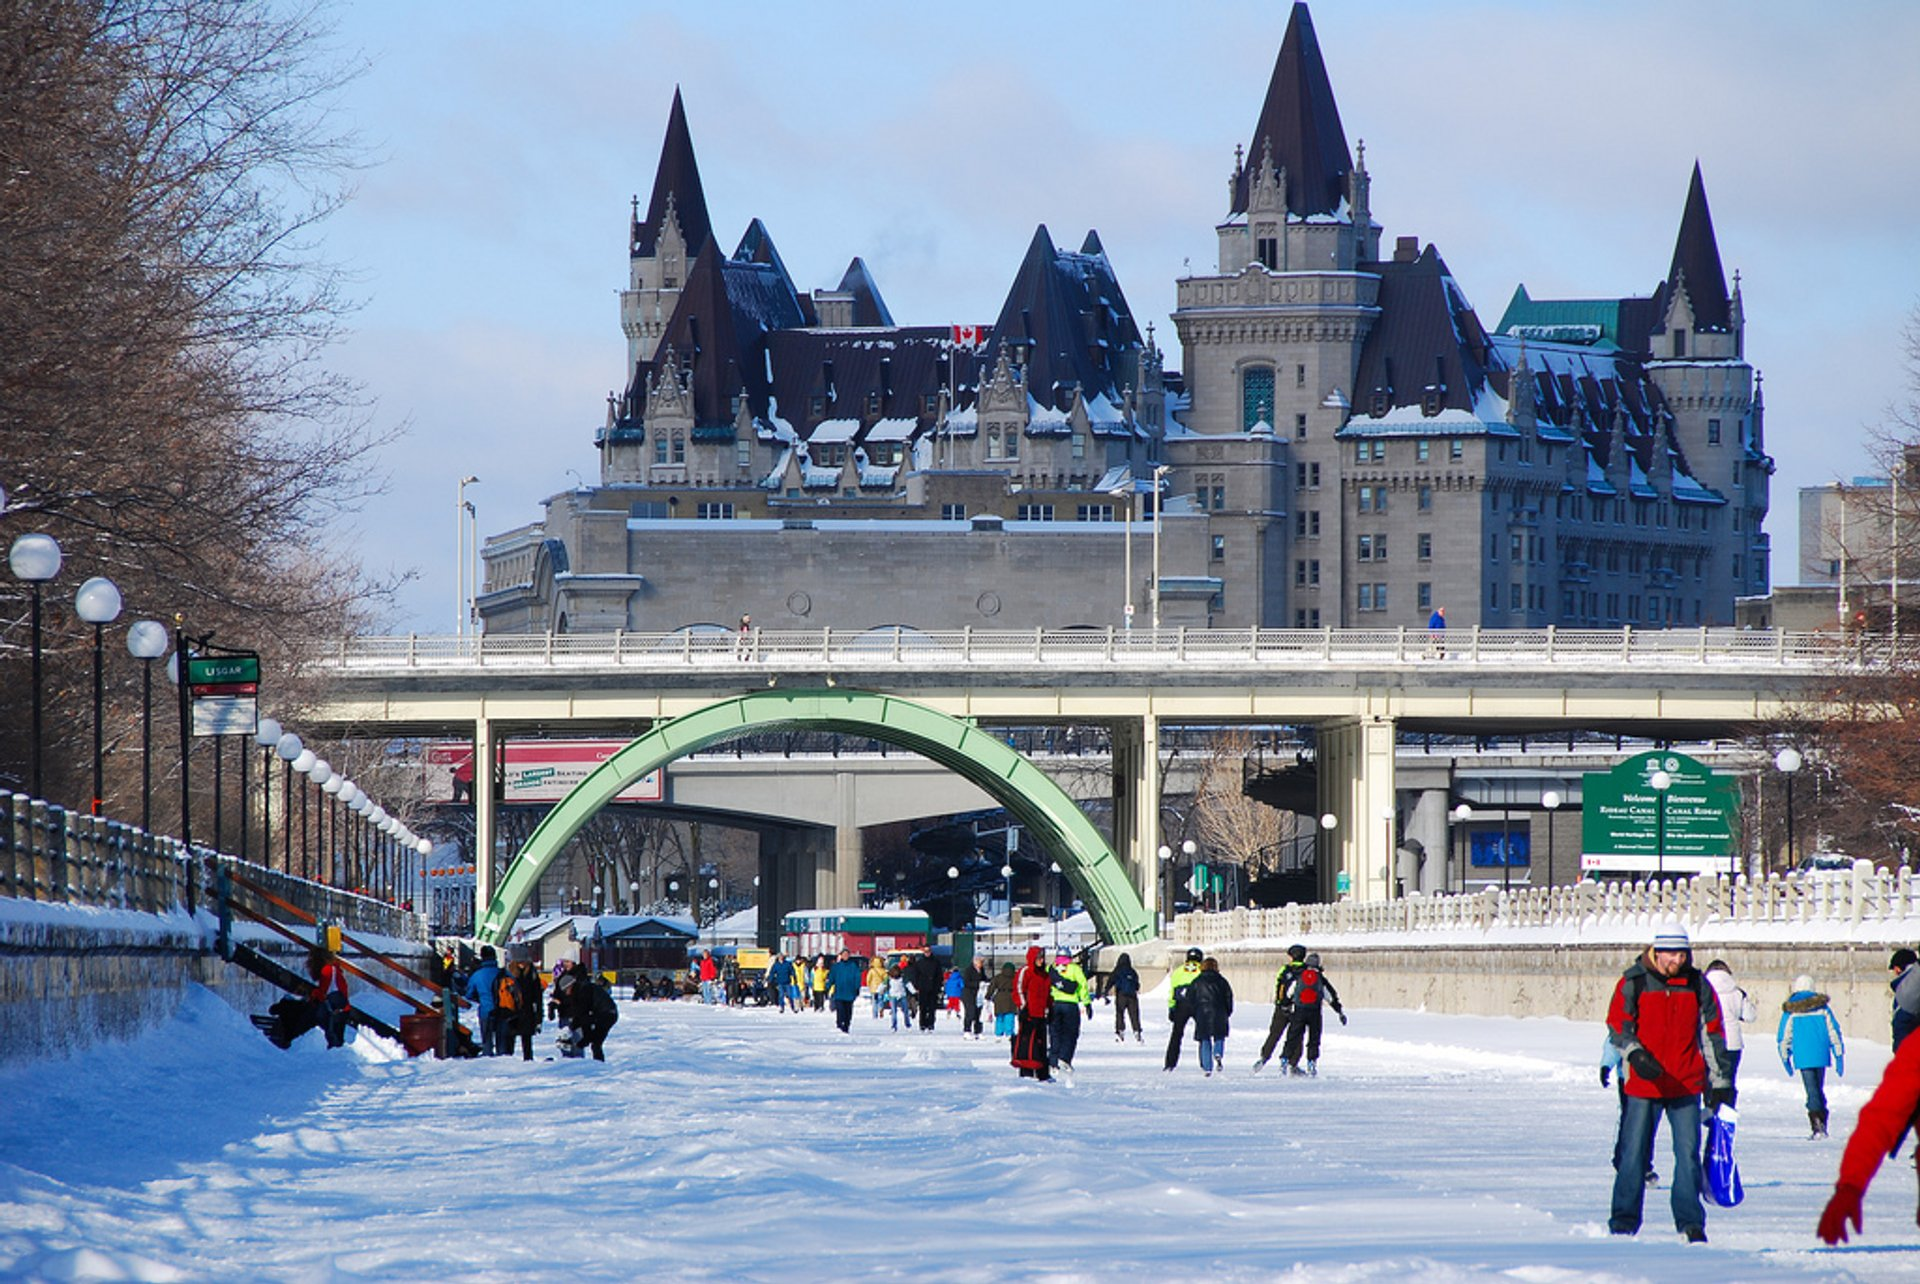 Rideau Canal Skating Season in Ontario - Best Season 2019